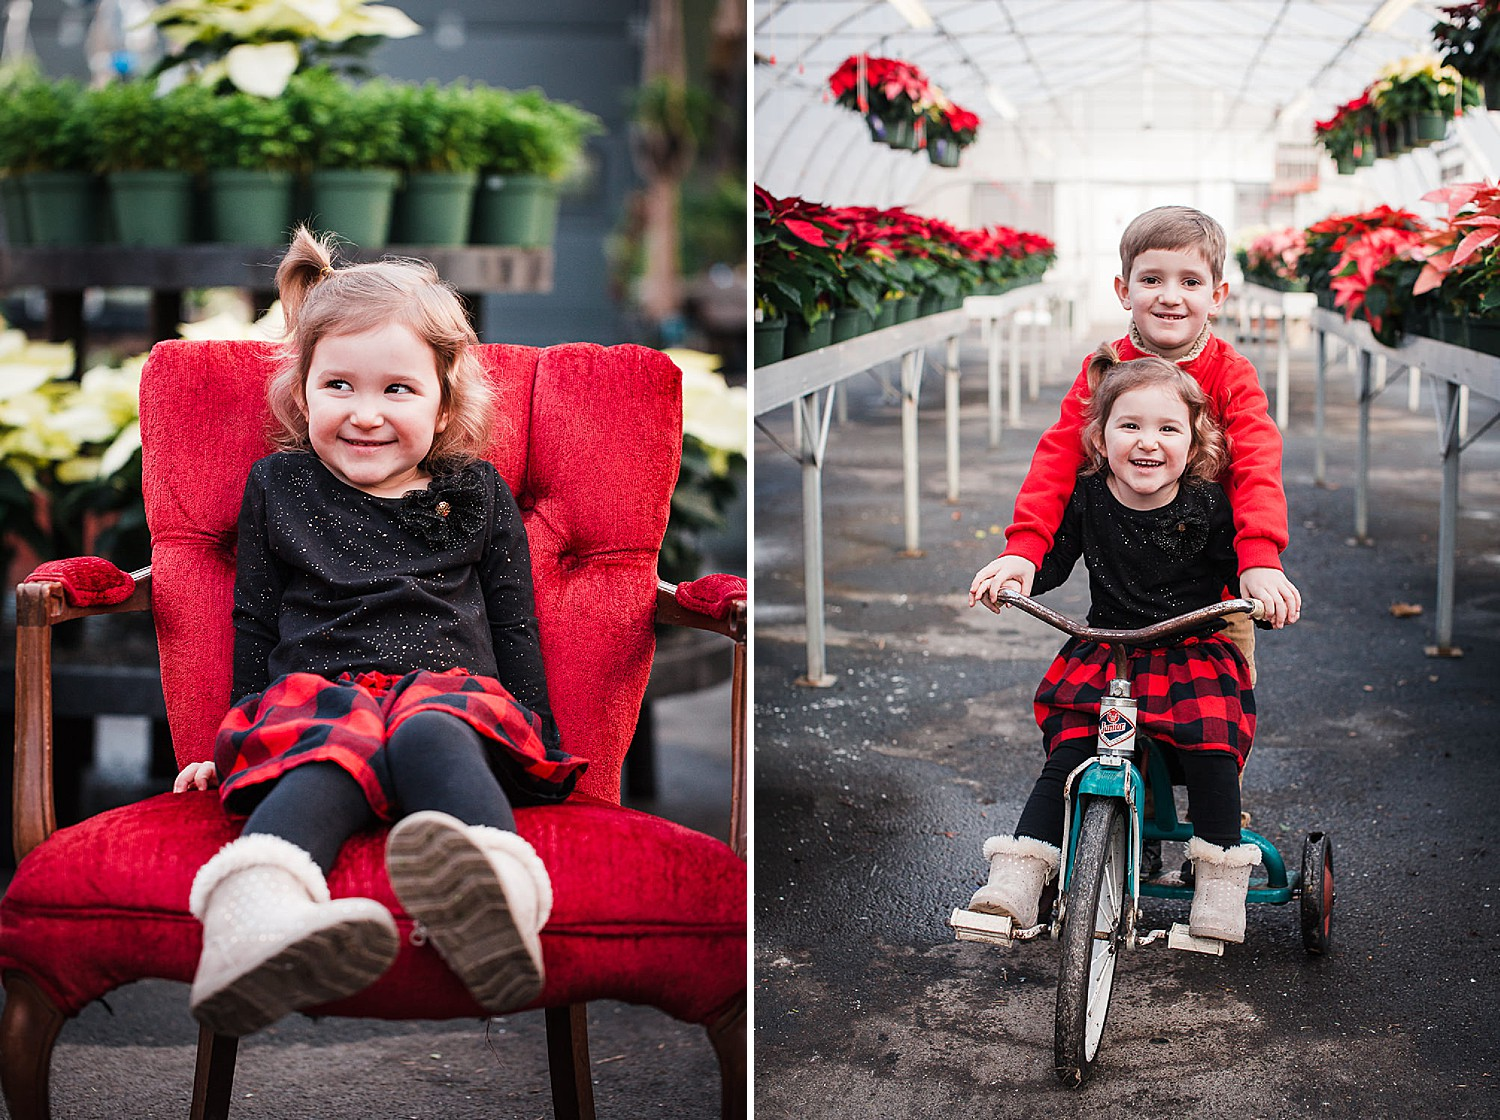 Photo of a little boy and girl riding on a vintage tricycle in a greenhouse full of poinsettias at Christmas time.